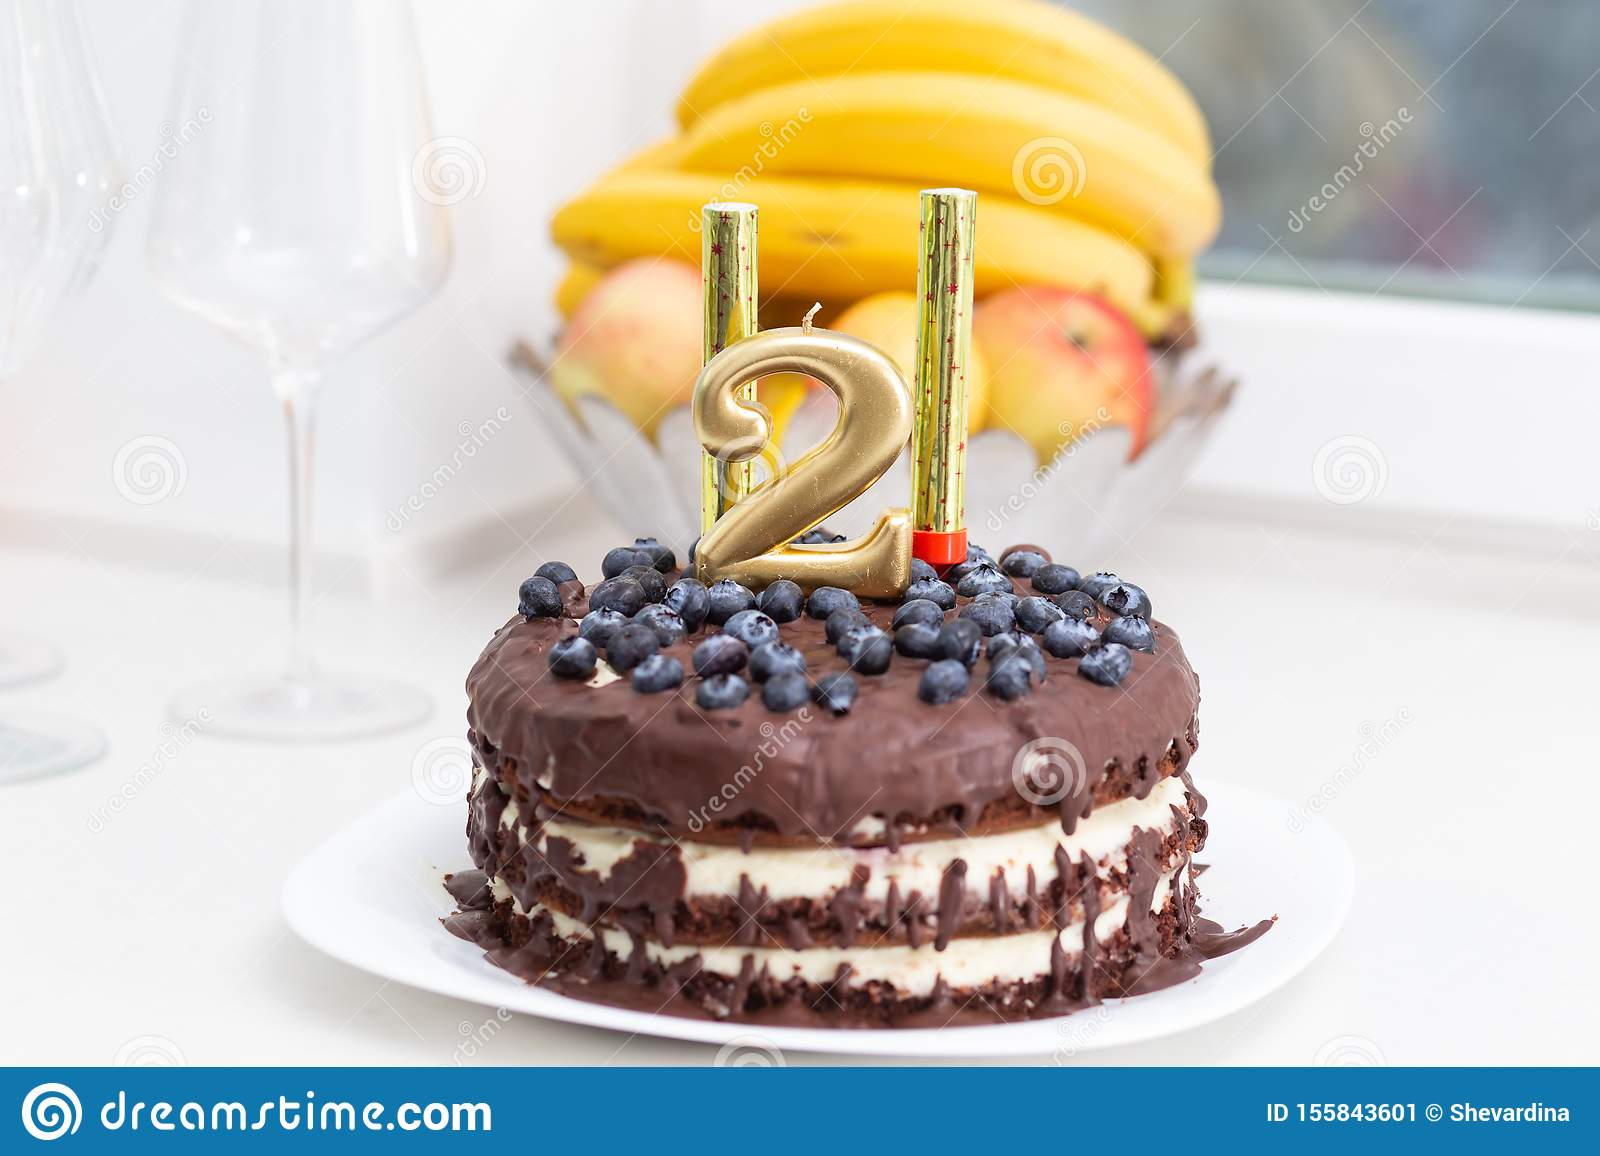 Remarkable Homemade Birthday Cake With Chocolate And Blueberries Stock Image Funny Birthday Cards Online Elaedamsfinfo